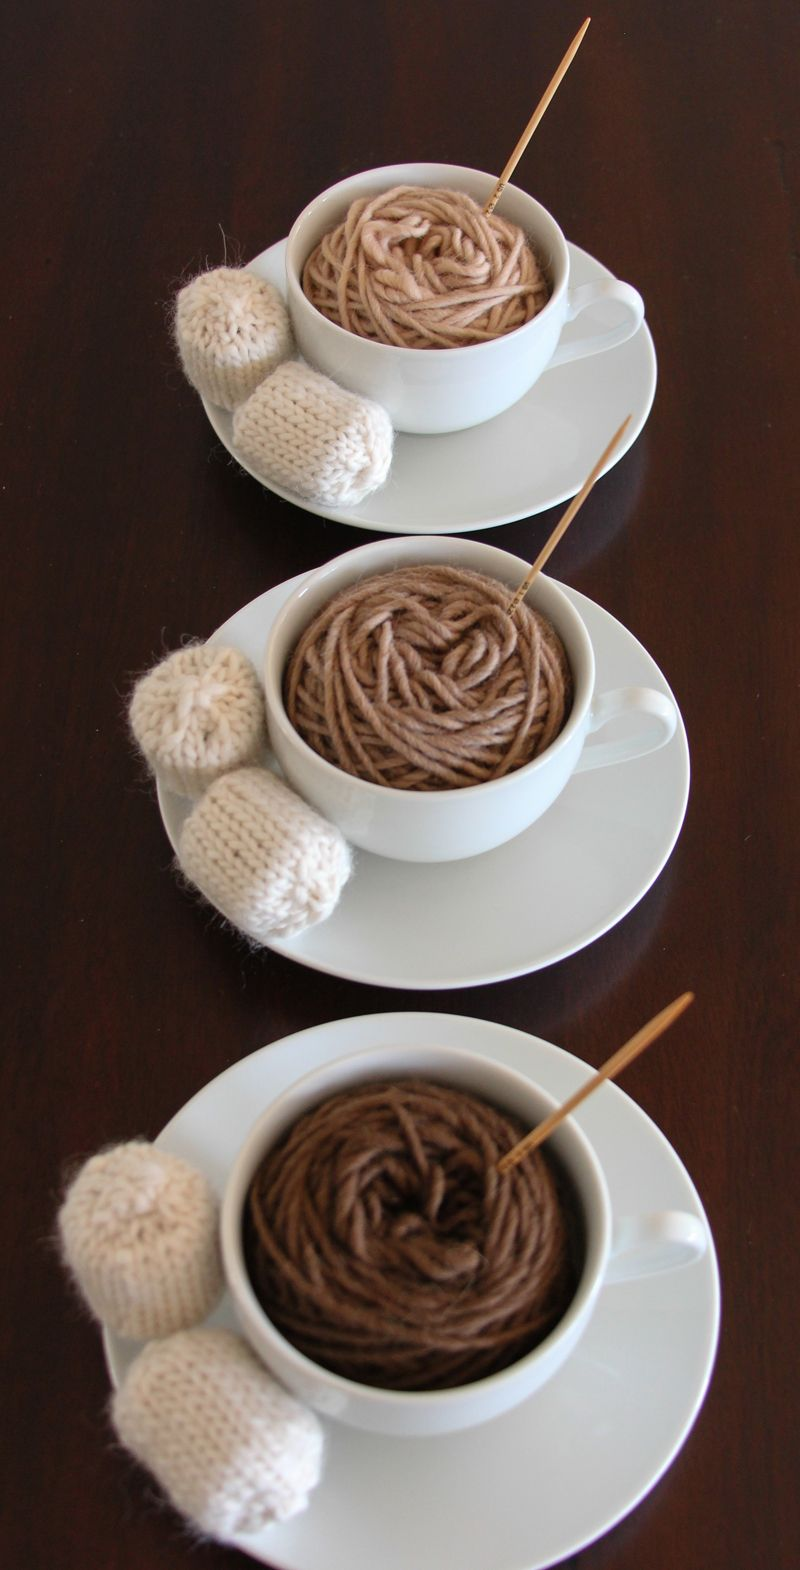 Hot beverages and yarn – two great ways to stay warm during the winter. #beverages